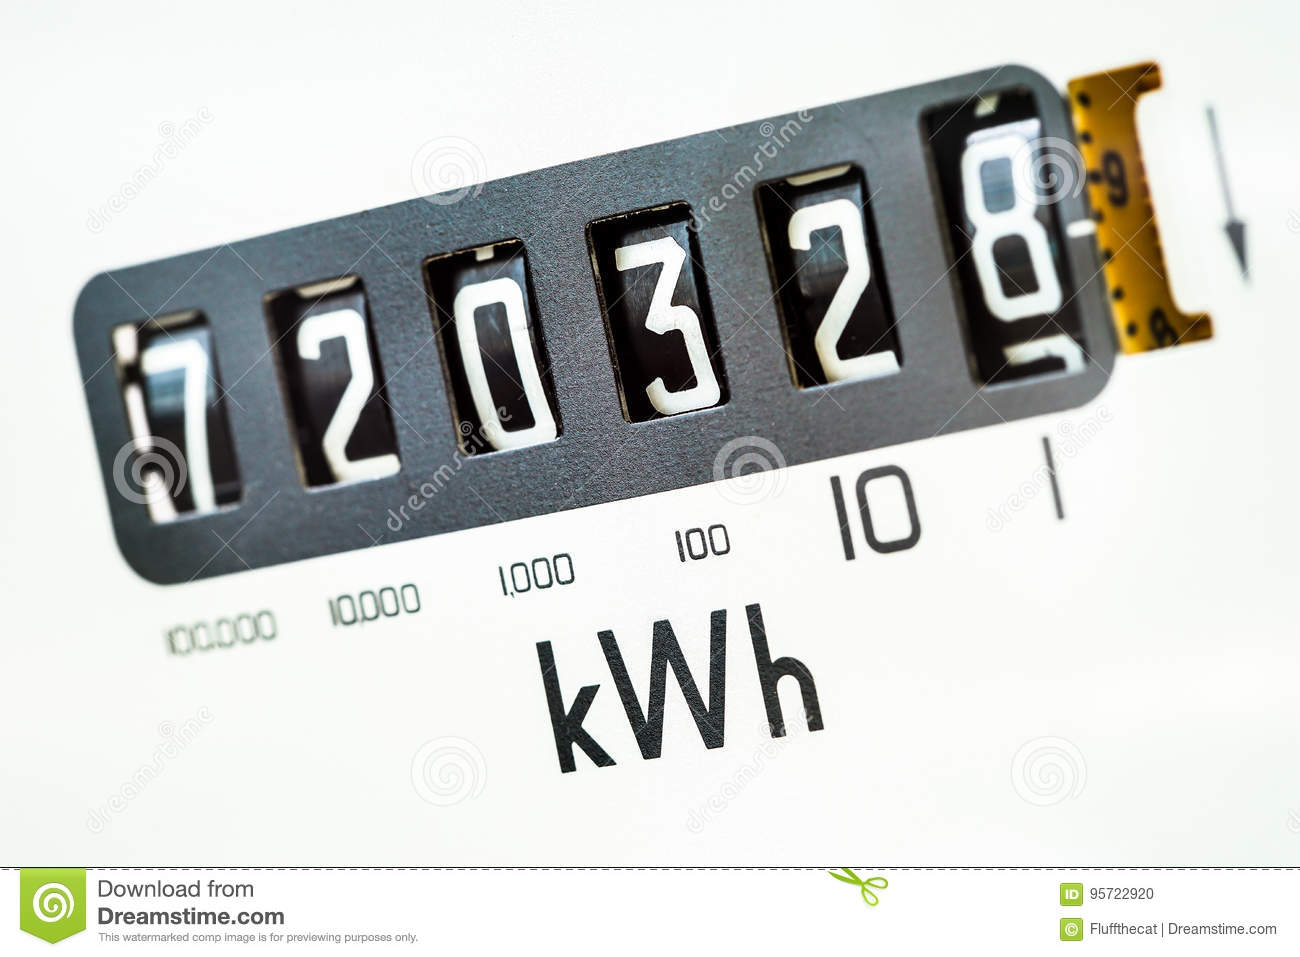 Electric meter close-up stock photo. Image of energy - 95722920